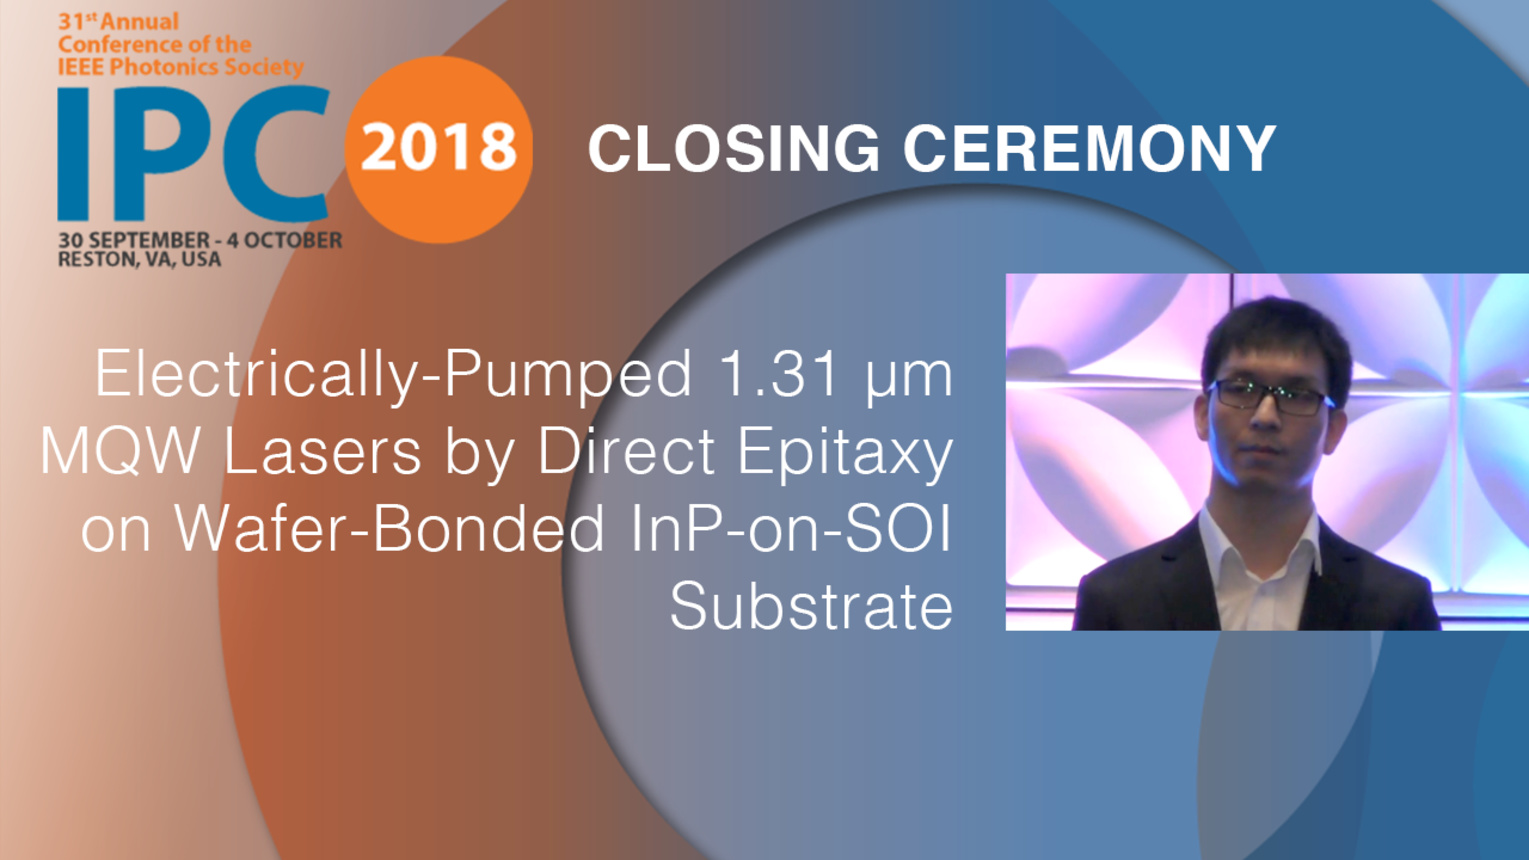 Electrically-Pumped 1.31 μm MQW Lasers by Direct Epitaxy on Wafer-Bonded InP-on-SOI Substrate - Yingtao Hu - Closing Ceremony, IPC 2018